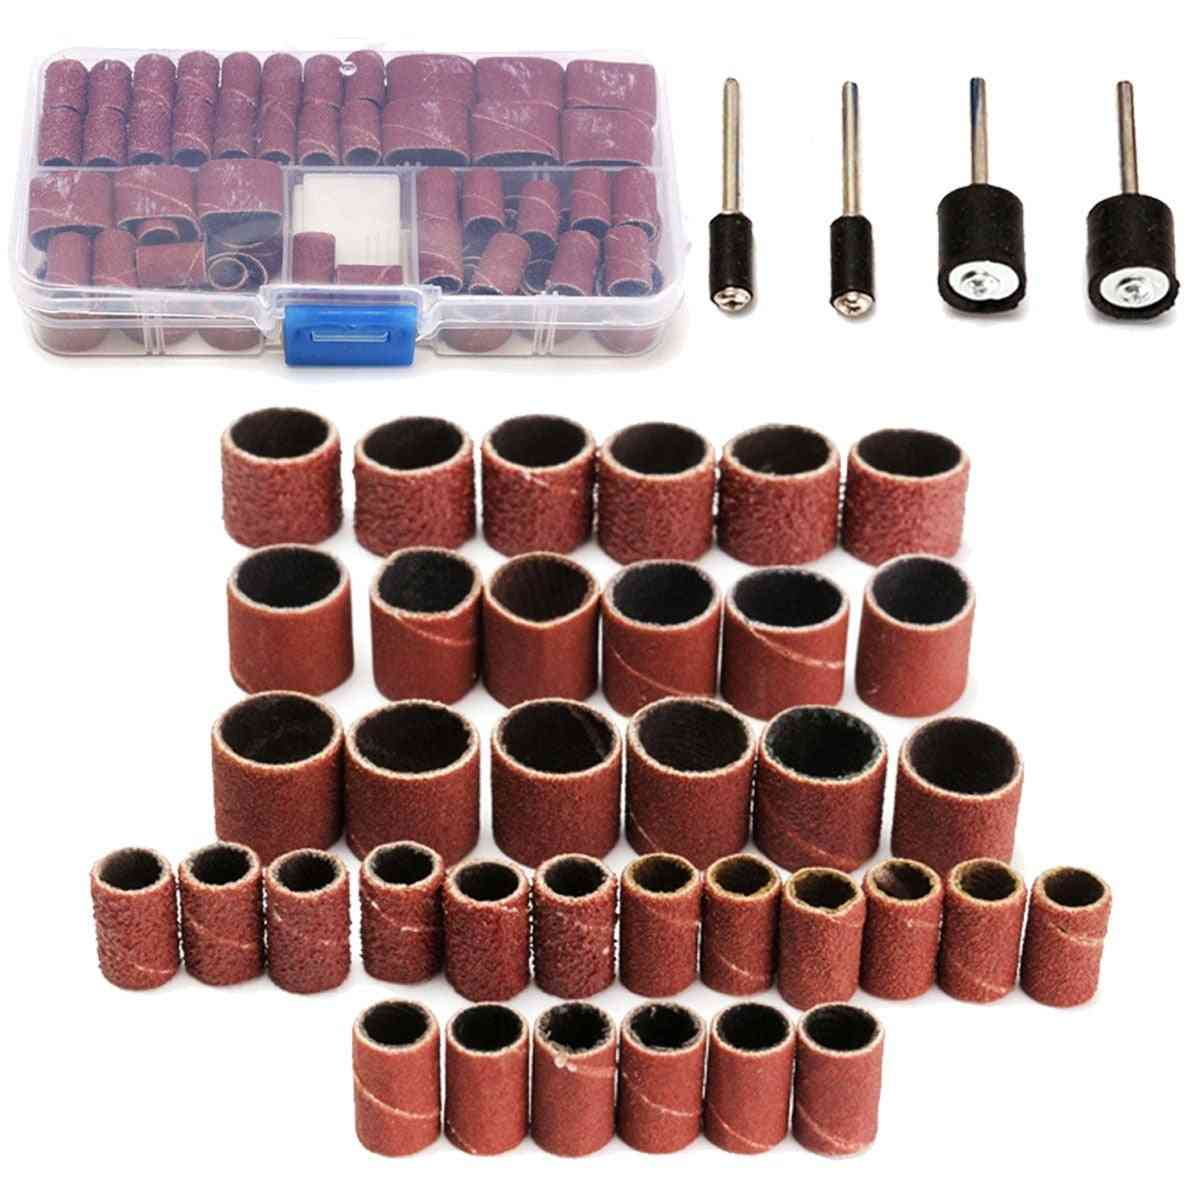 104pcs Sanding Bands Drums Sleeve For Dremel Good Thermal Conductivity